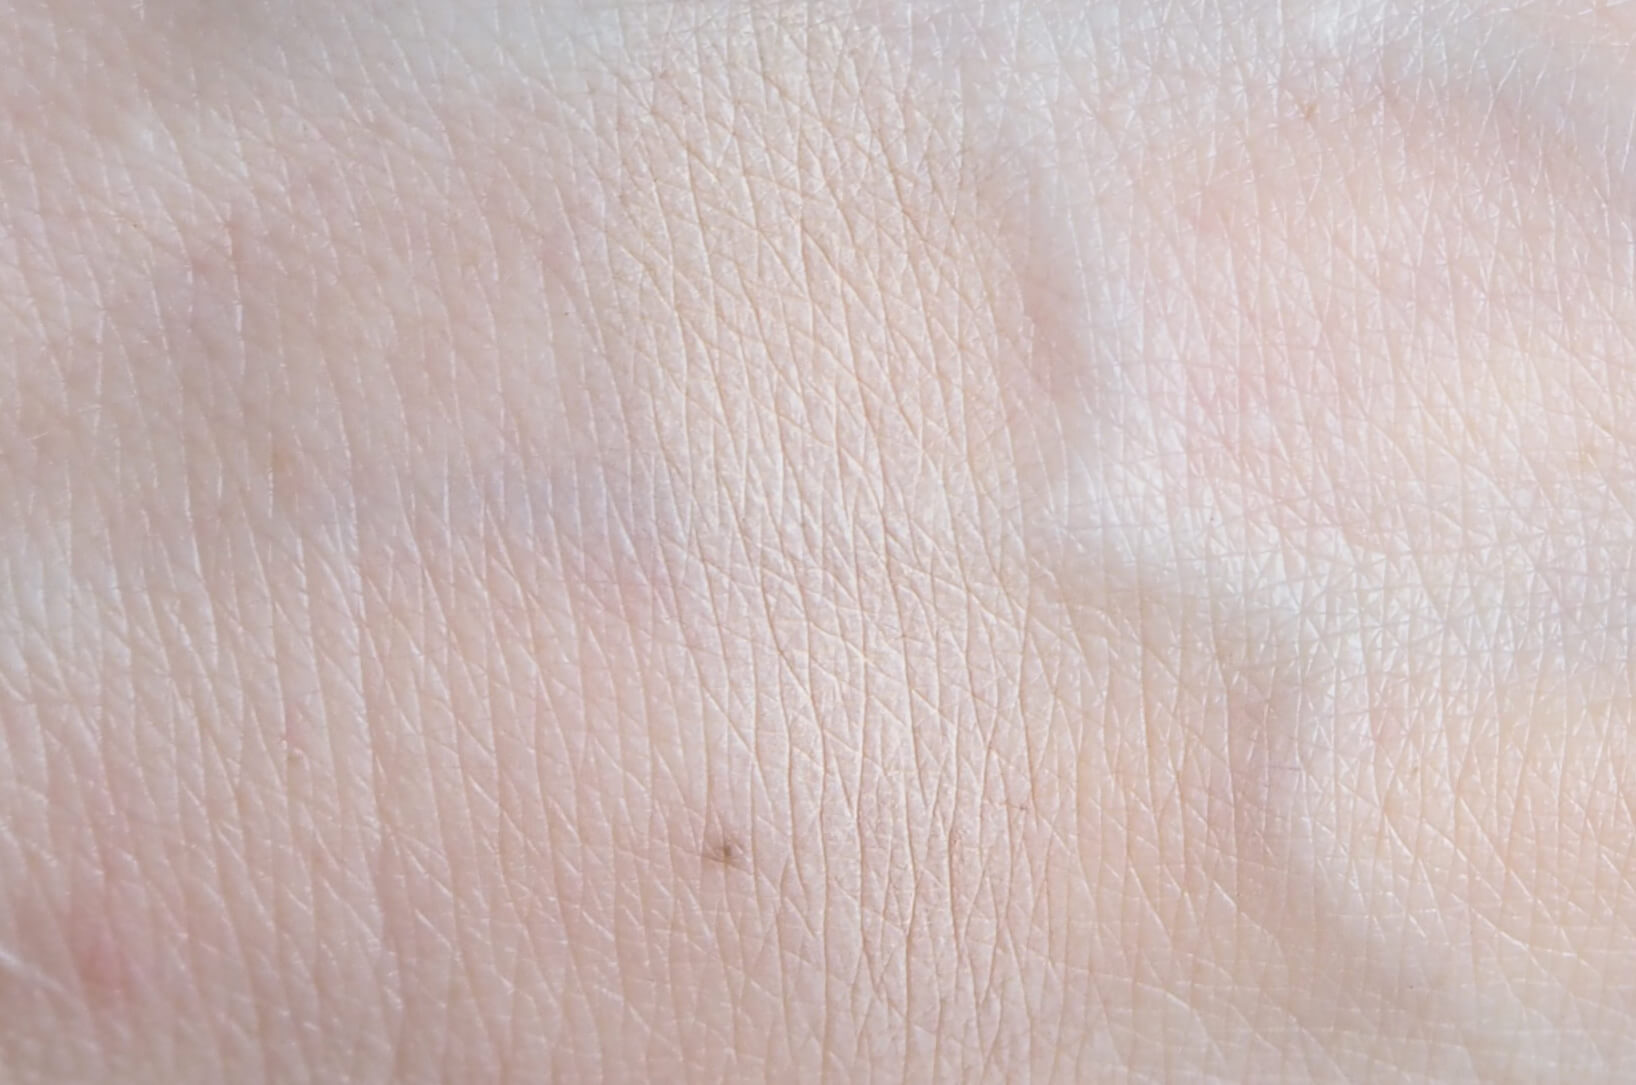 SWATCH ERBORIAN 0.09 TOUCH GINSENG CLAIR